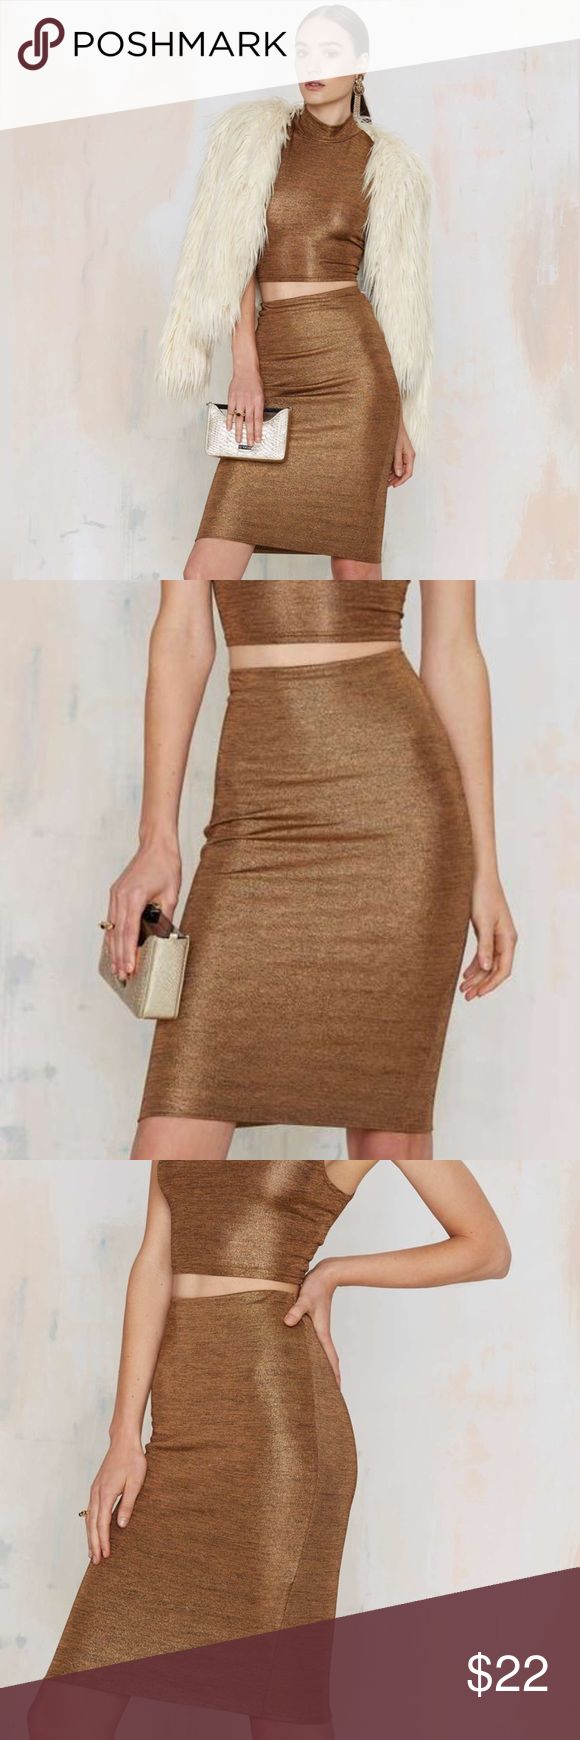 """Metallic Bodycon Midi Skirt New. Ships 1 - 2 days. Add to Bundle to save!   Flash dance metallic pencil skirt. From Nasty Gal By Glamorous. Your moves deserve metallics. The Flash Dance skirt is made in gold metallics and features pencil silhouette and elastic waistband.   95% Polyester. 5% Elasthana. 12.5"""" waist, 23.5"""" length.   Credit to Nasty Gal for model photos. Nasty Gal Skirts Pencil"""